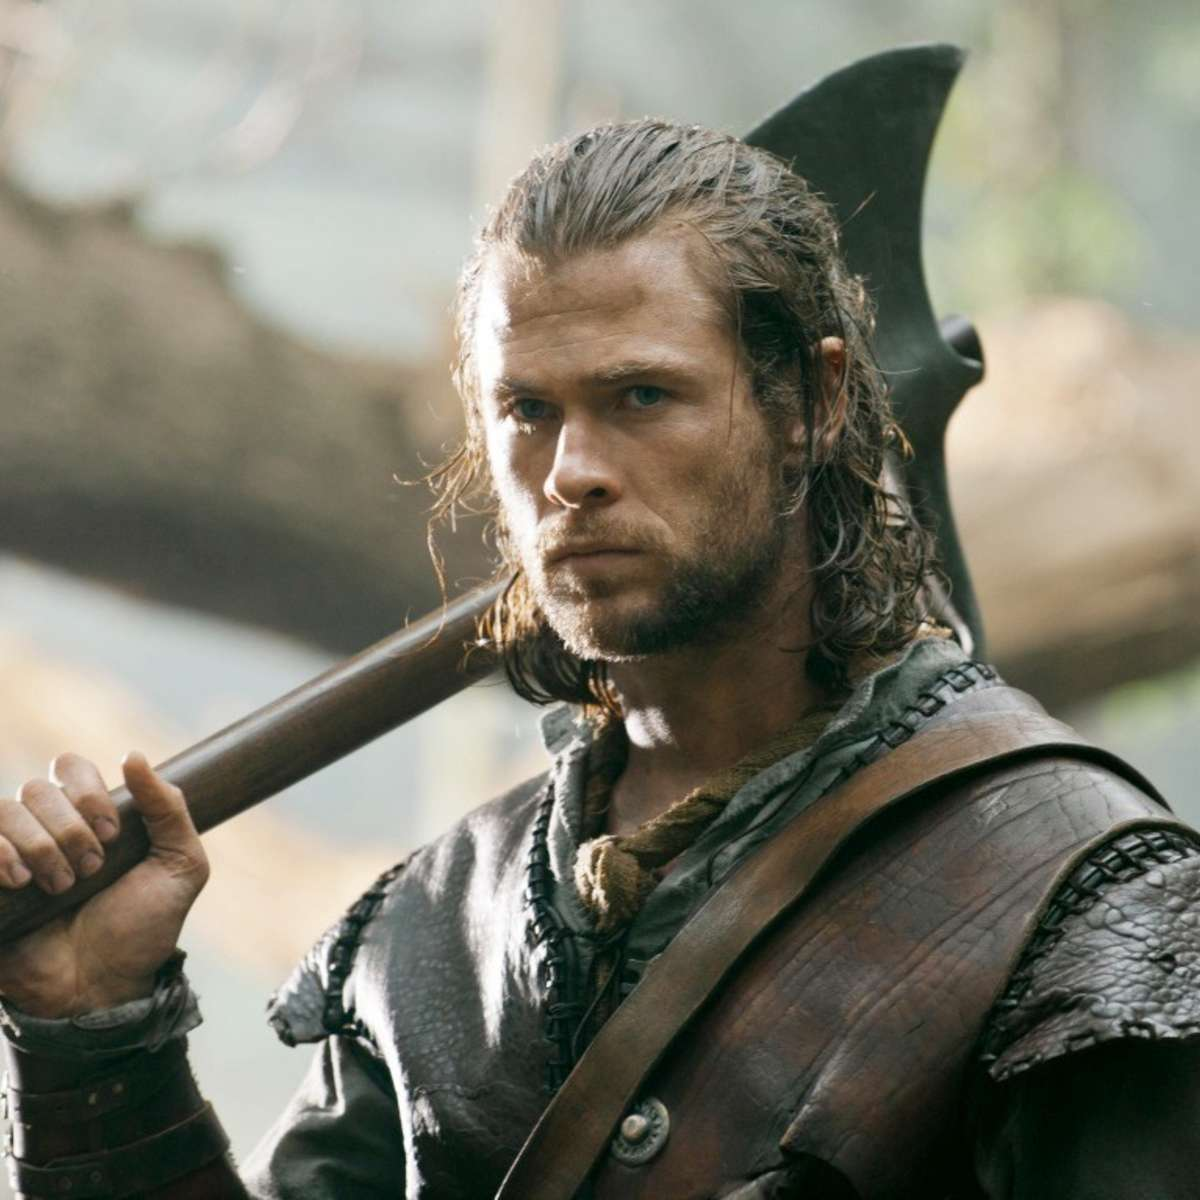 snow-white-huntsman-still10 chris hemsworth the huntsman.jpg